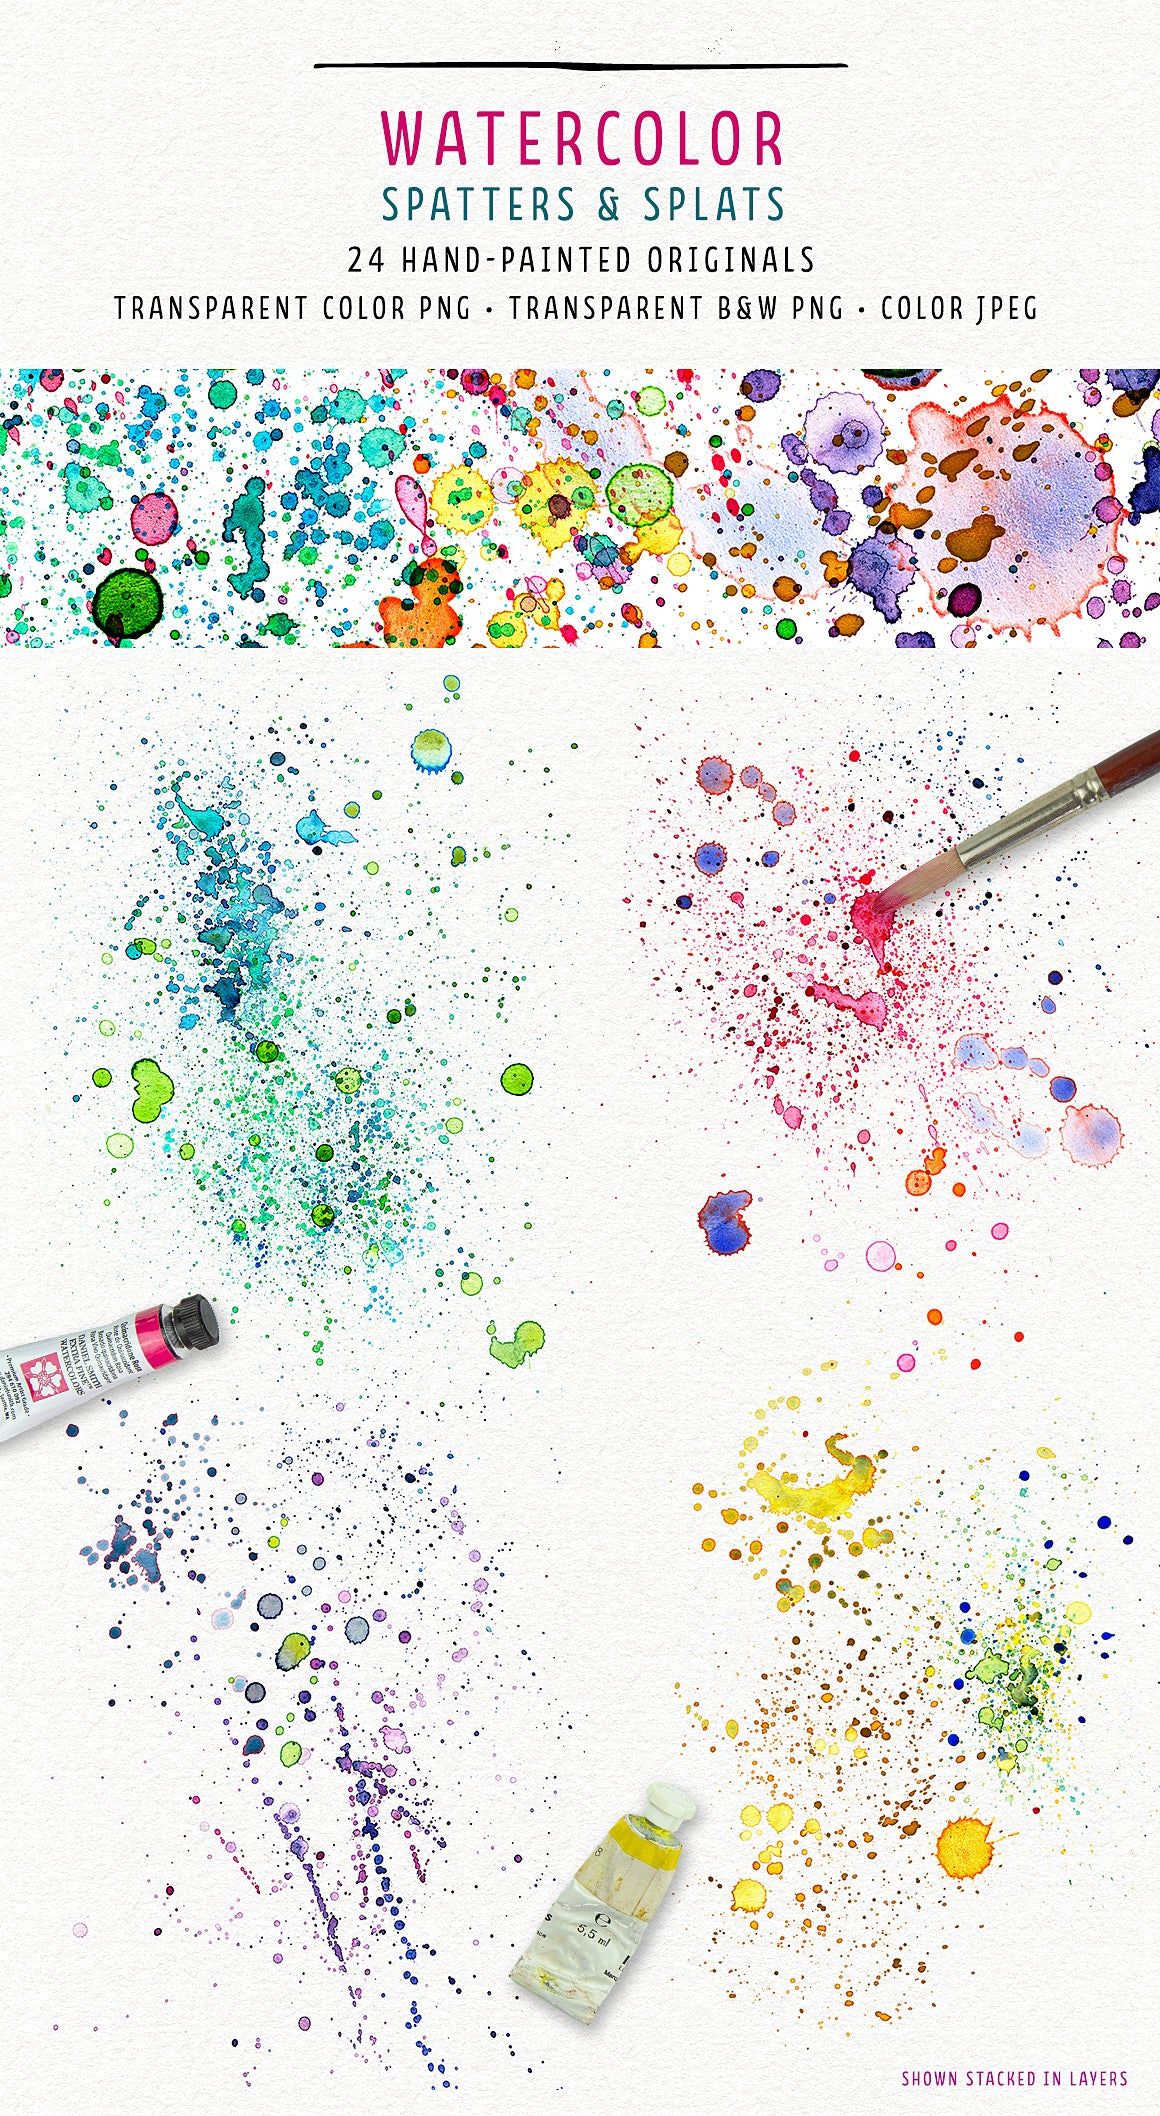 Watercolor spatter overlays from the Complete Inspirational Textures and Elements Collection.